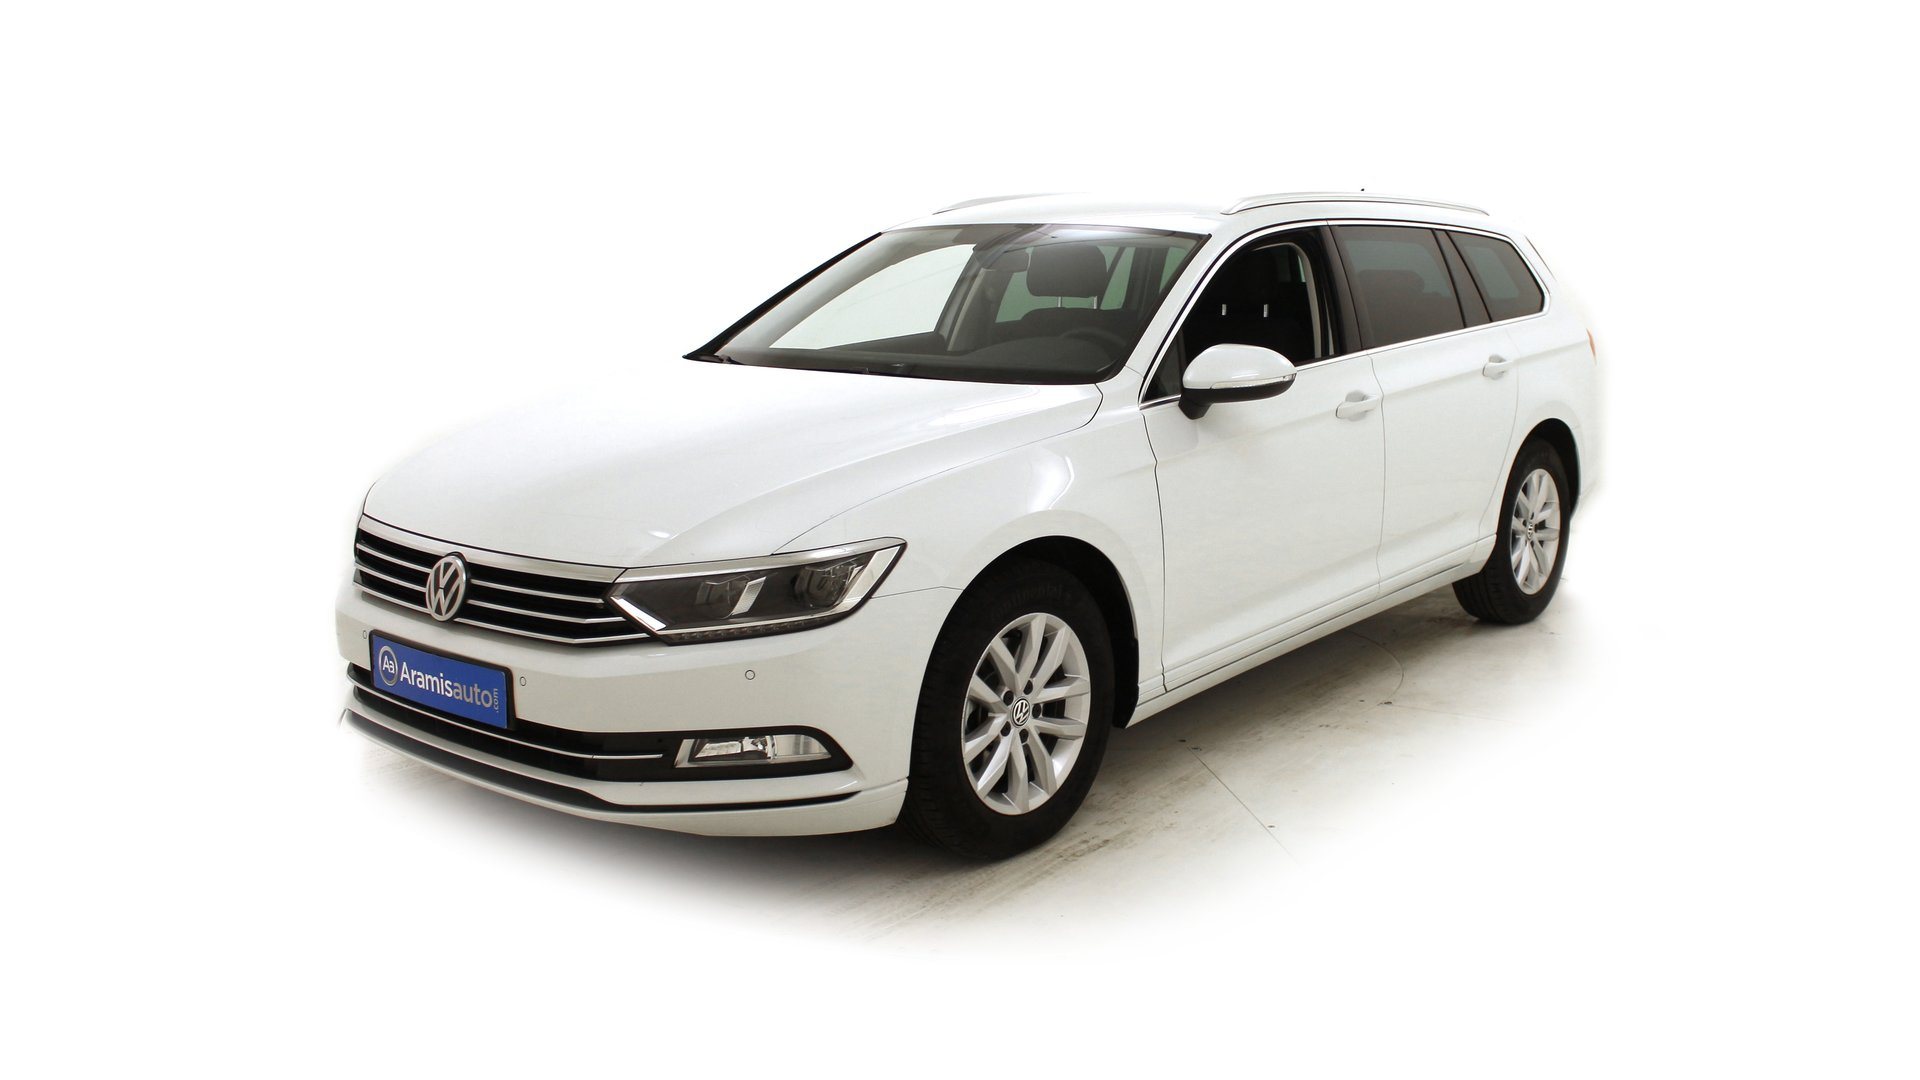 volkswagen passat sw nouvelle break 5 portes diesel 2 0 tdi 150 bo te manuelle. Black Bedroom Furniture Sets. Home Design Ideas